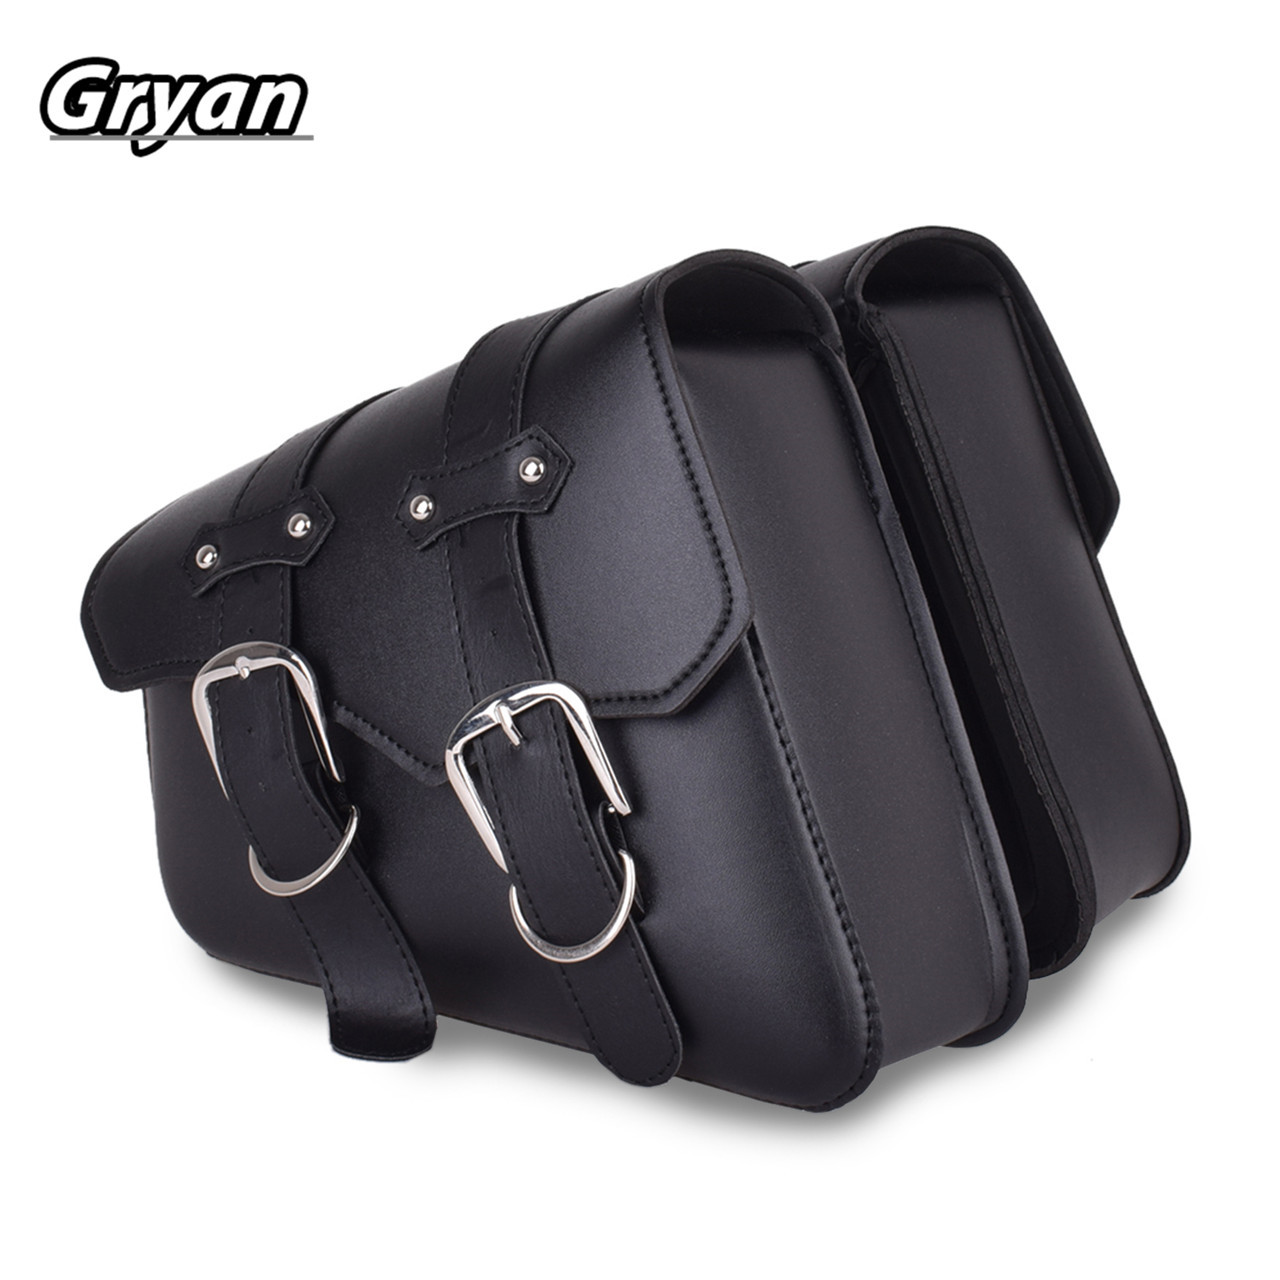 29*11*25cm PU Leather Motorcycle bag For Sportster XL 883 1200 Case for Motorcycle Saddle Bags Motorbike Side Tool Bag Luggage